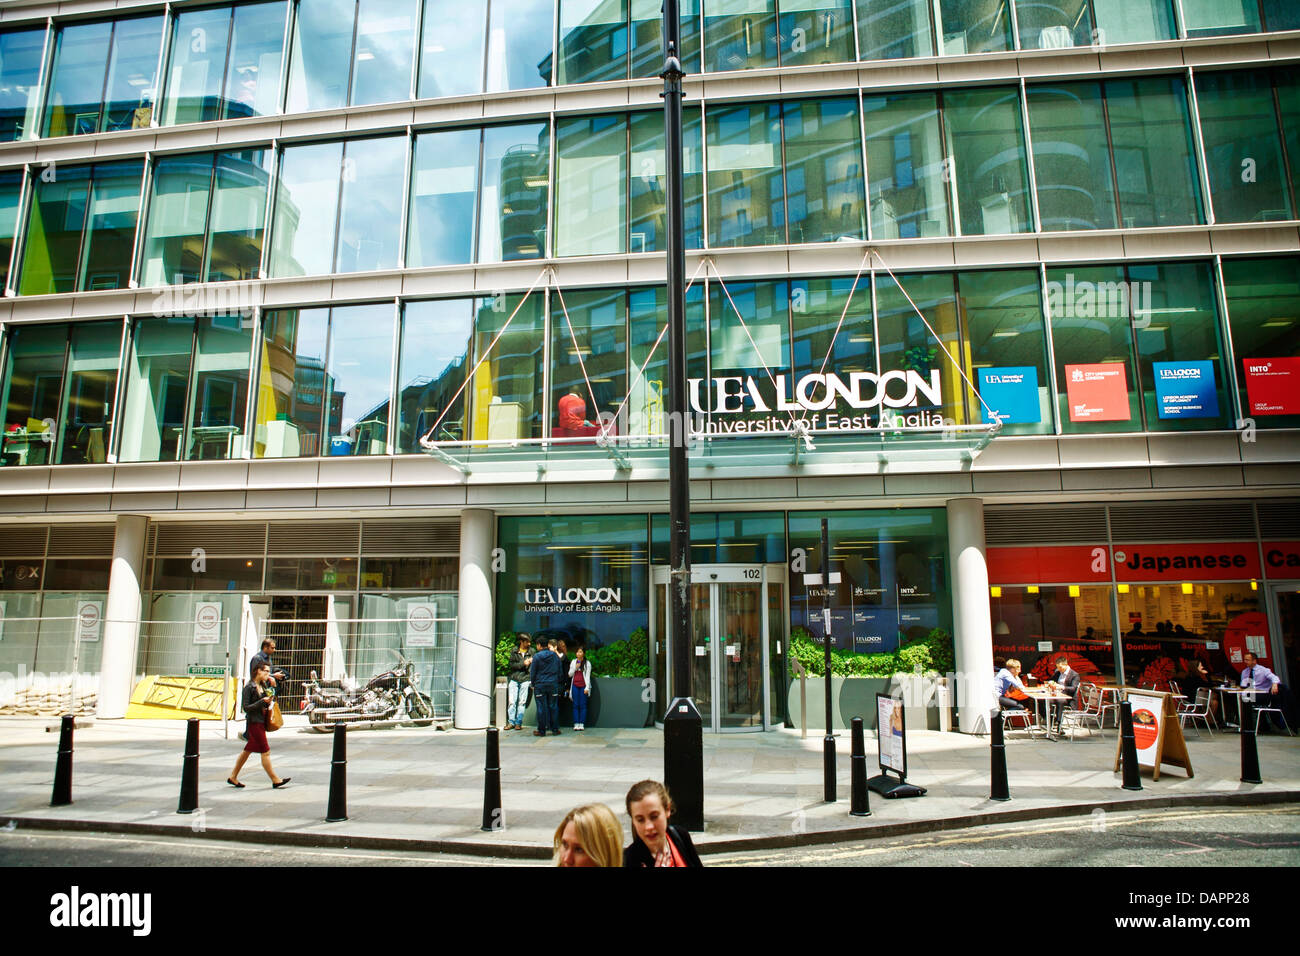 UEA London London UEA University of East Anglia - Stock Image